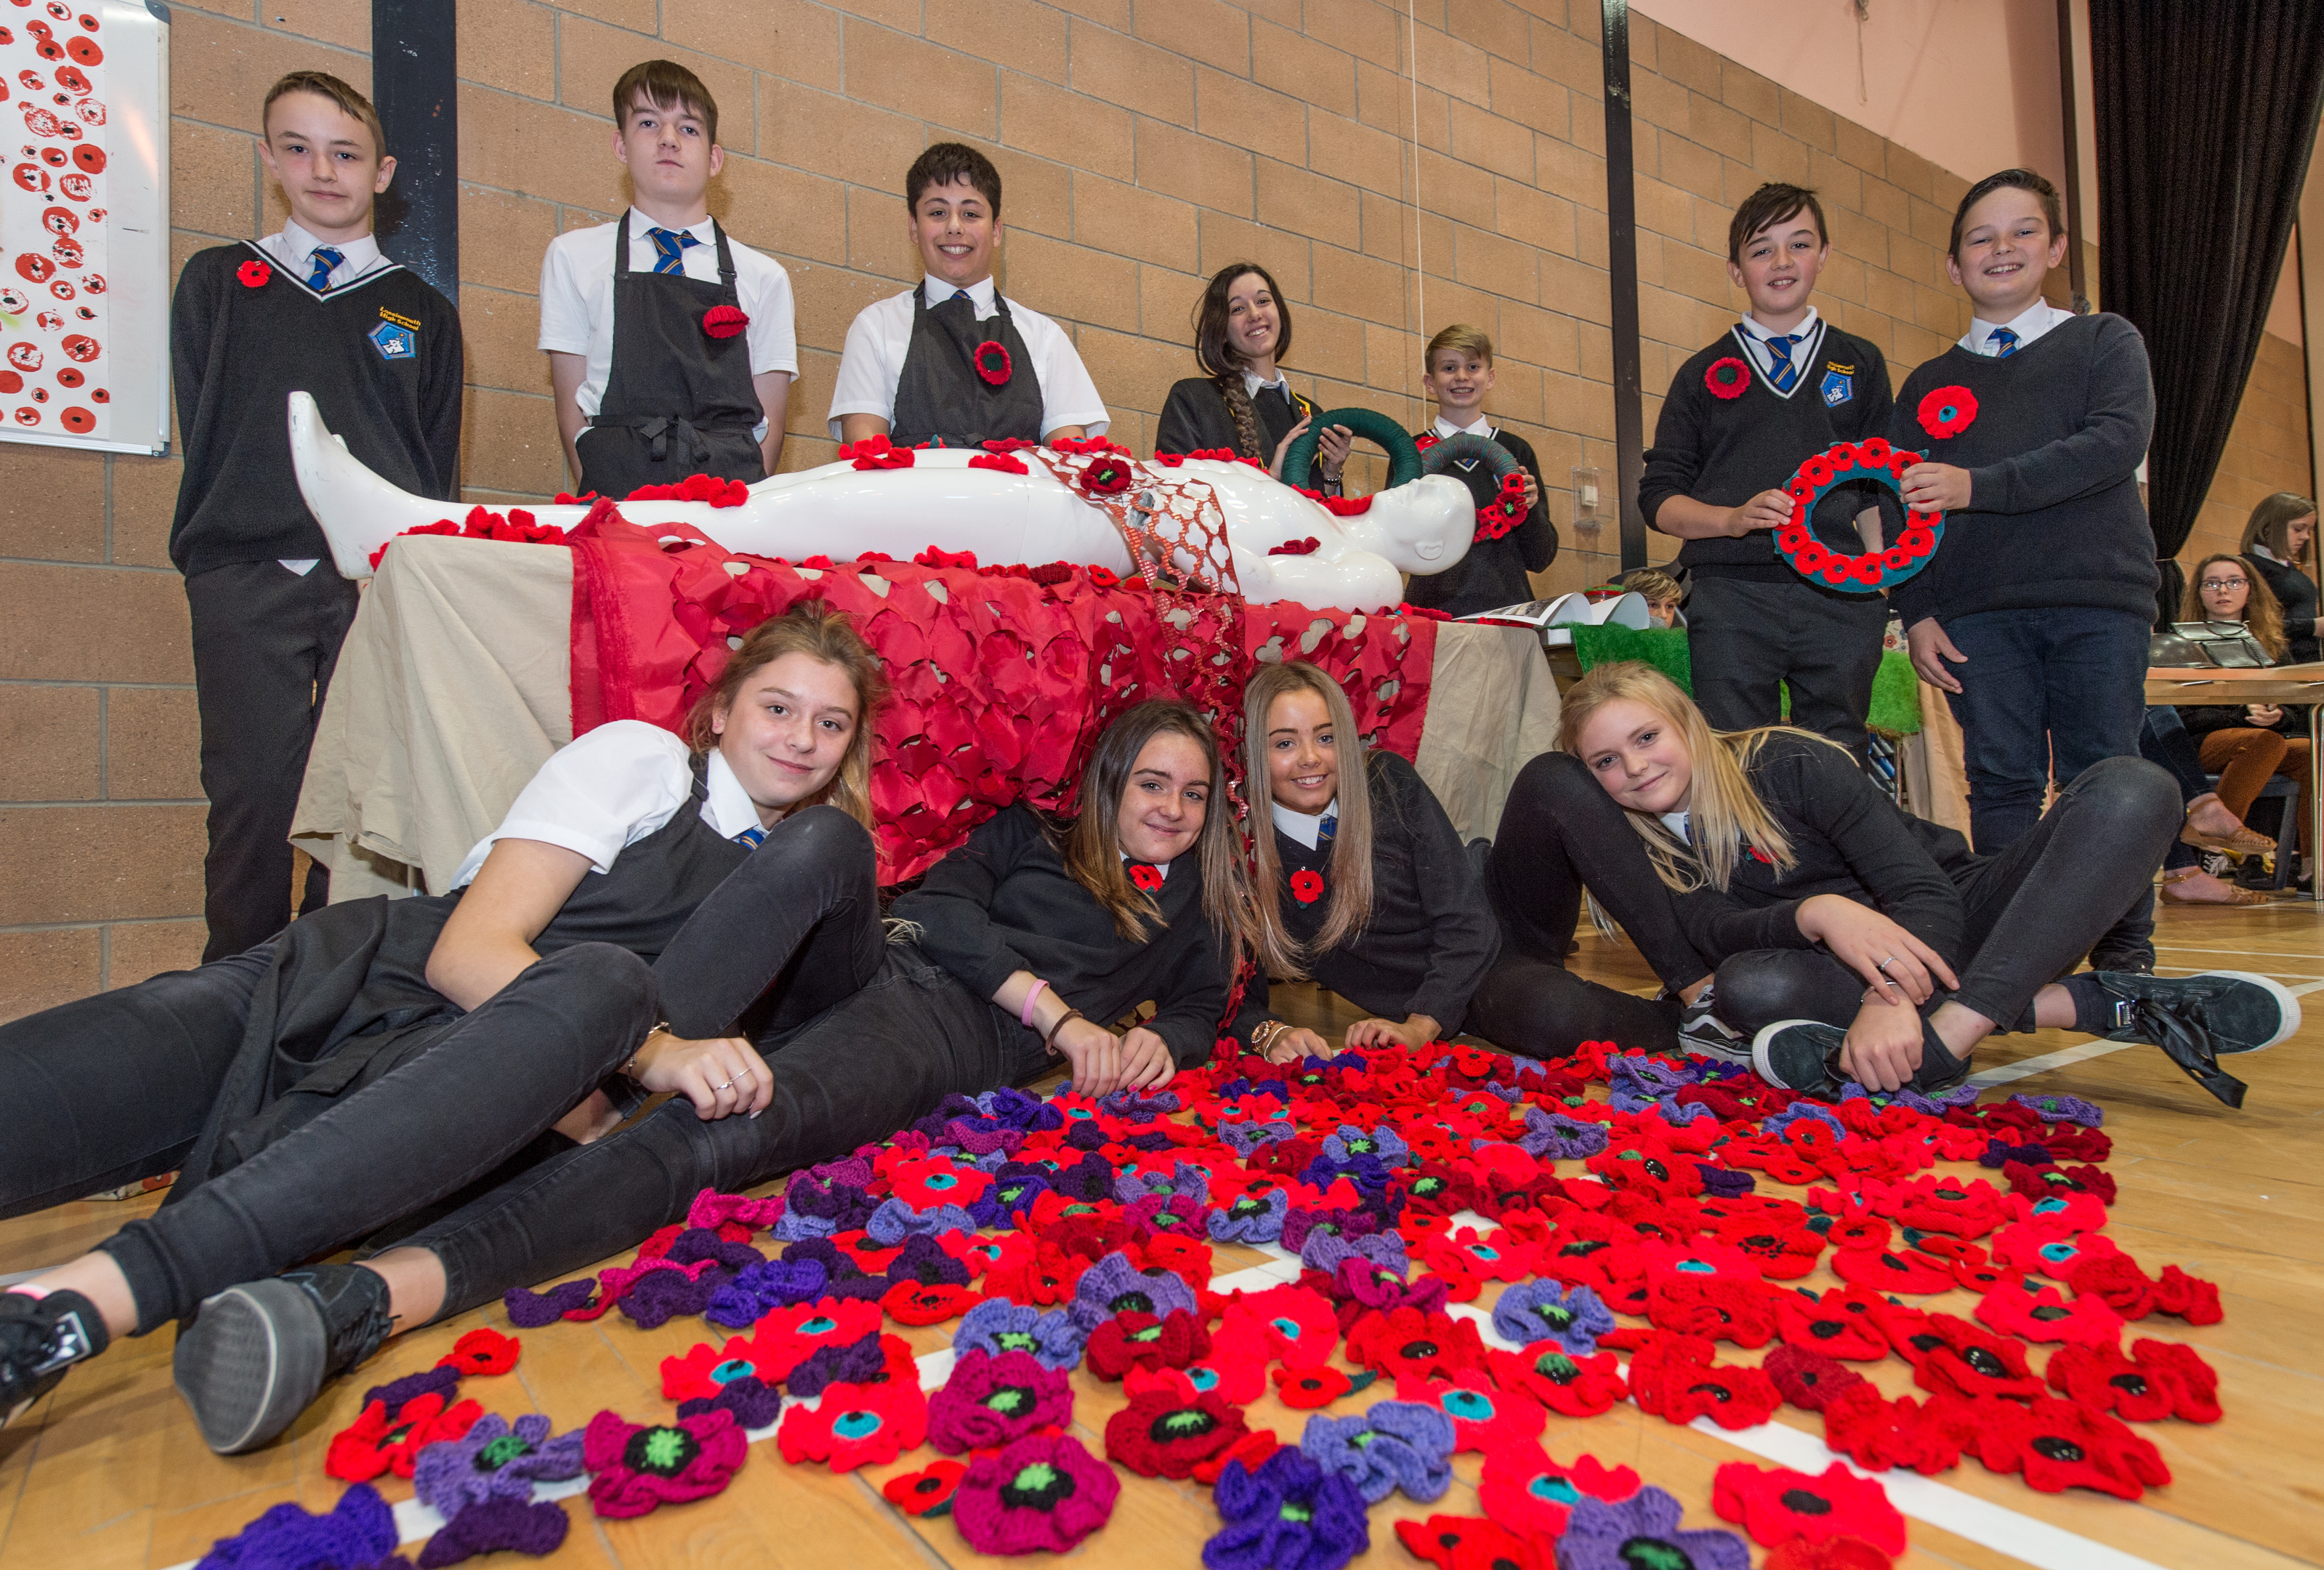 S1 students at Lossiemouth High School created their own poppies and wreaths for the event.